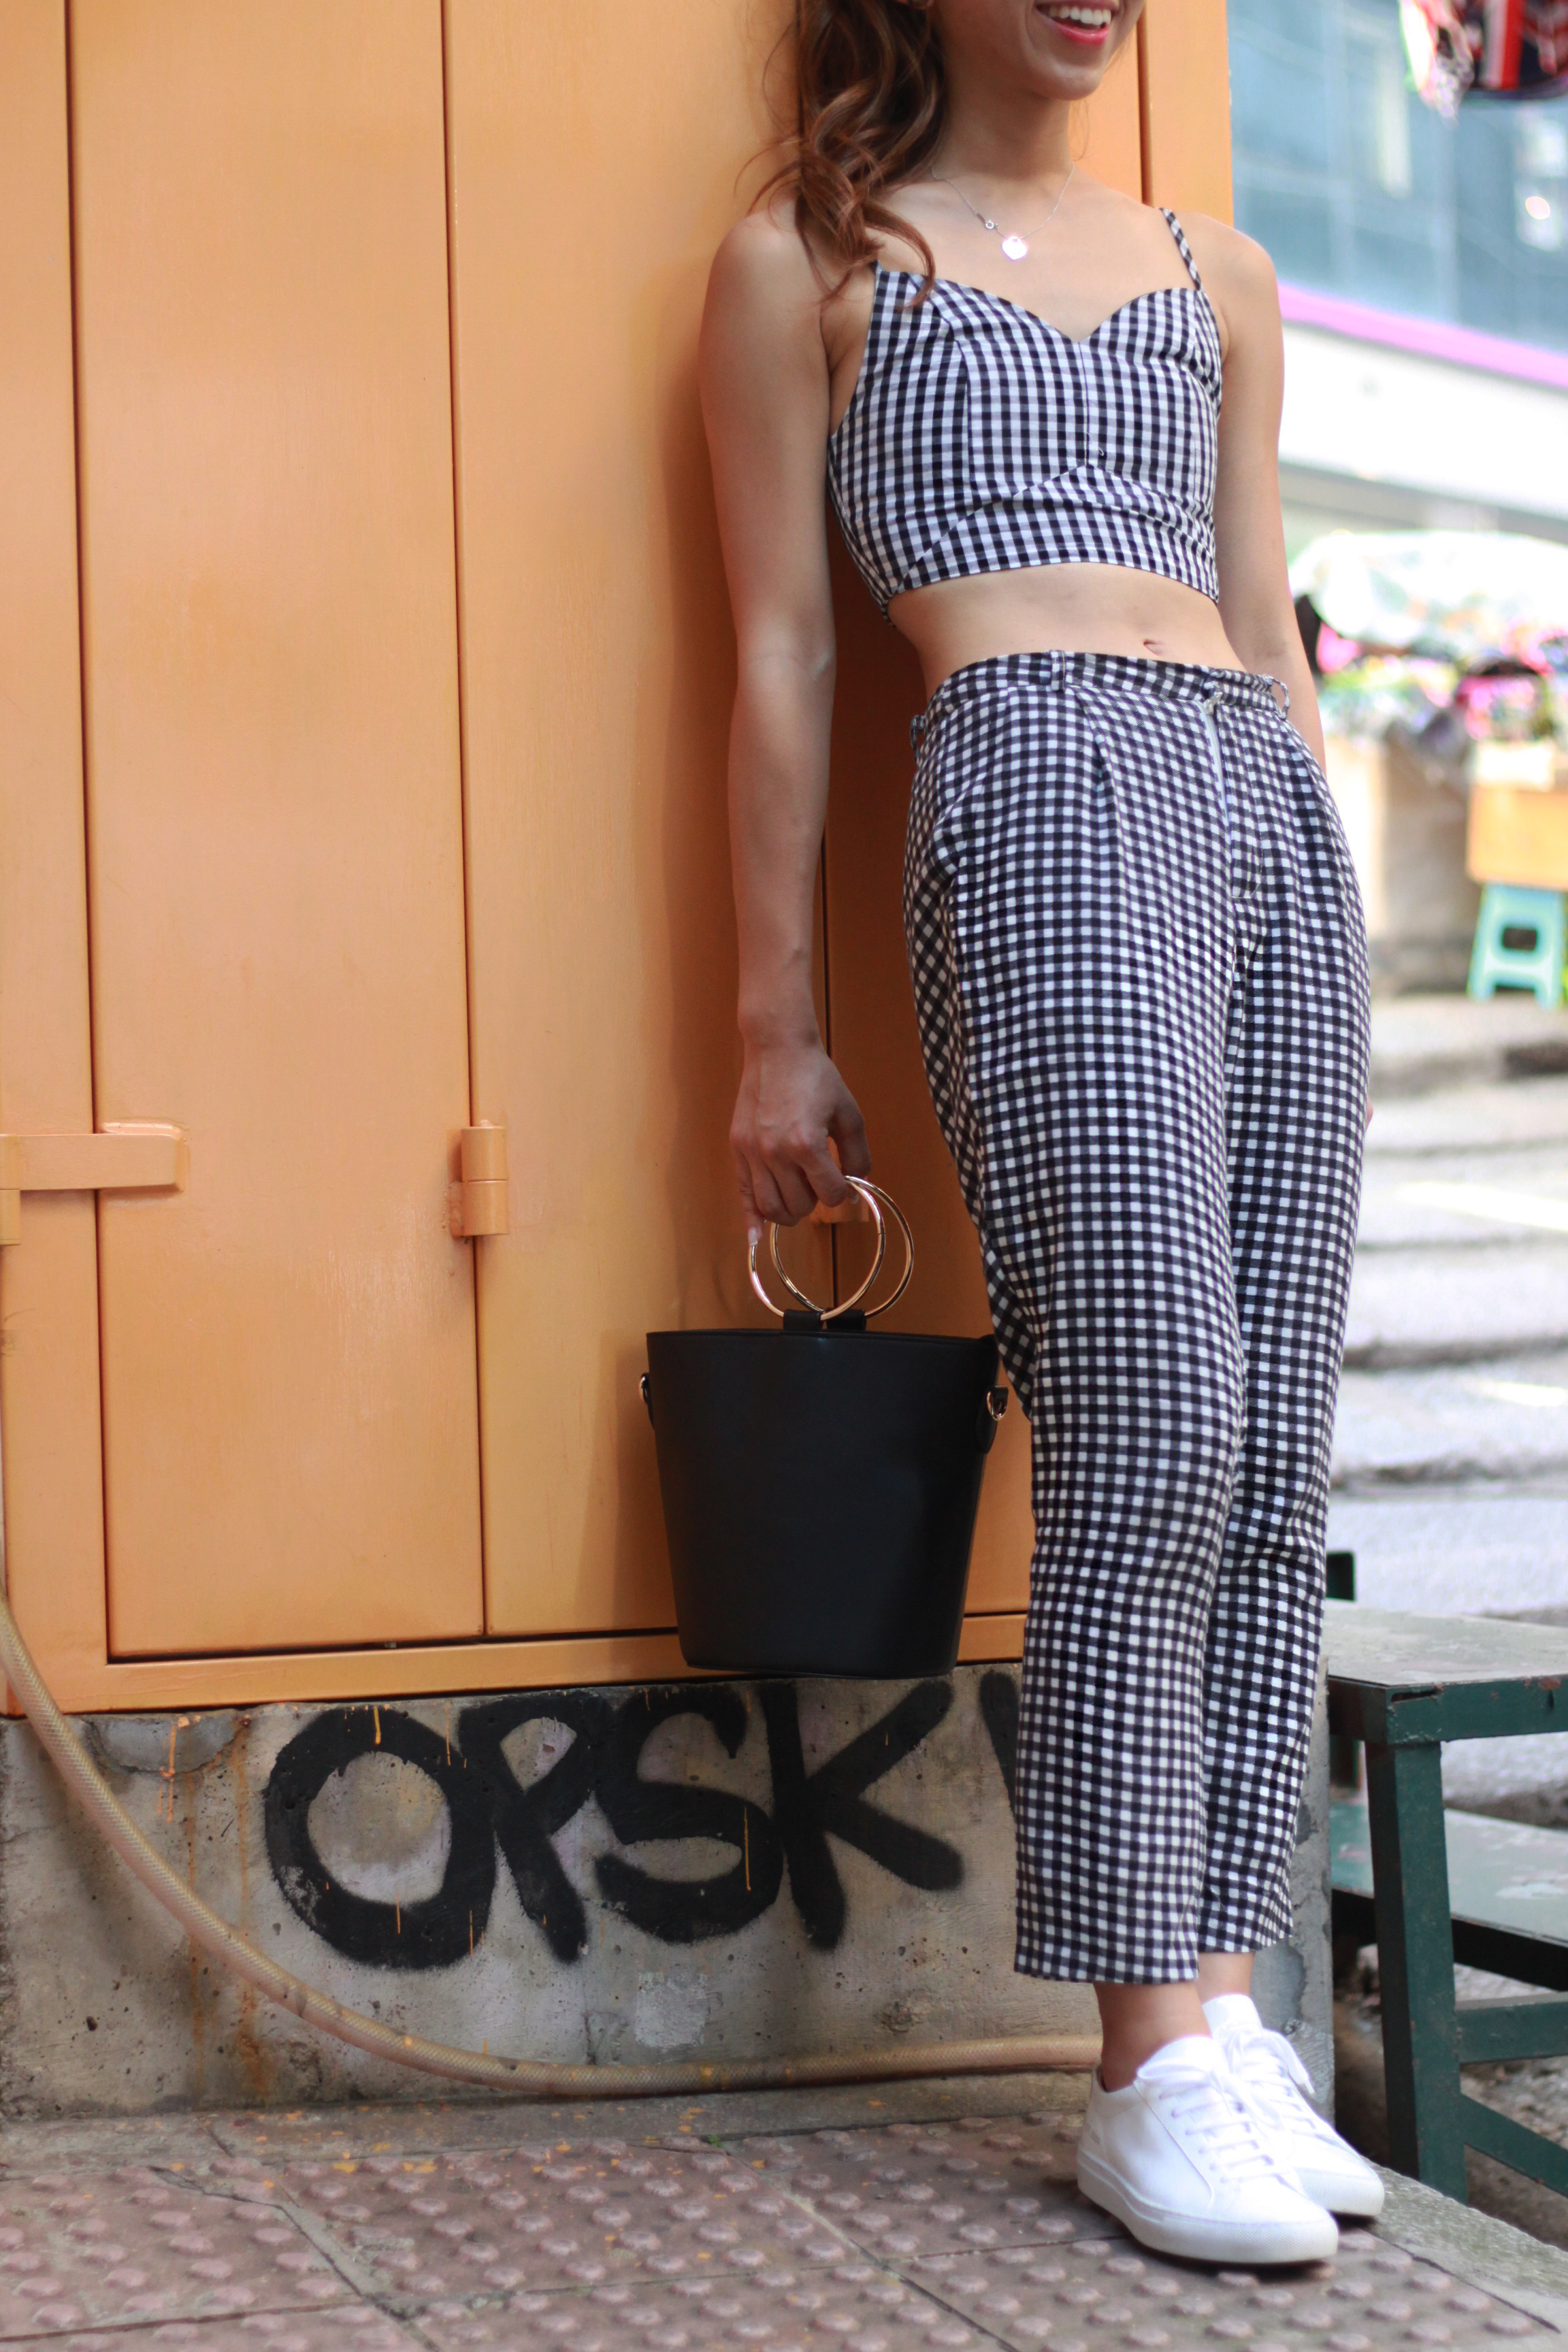 Fashmob gingham bralette / Fashmob gingham pants / H&M sheer shirt /  Common Projects classic lace-up sneakers (glossy)  / Black ring bag from Japan